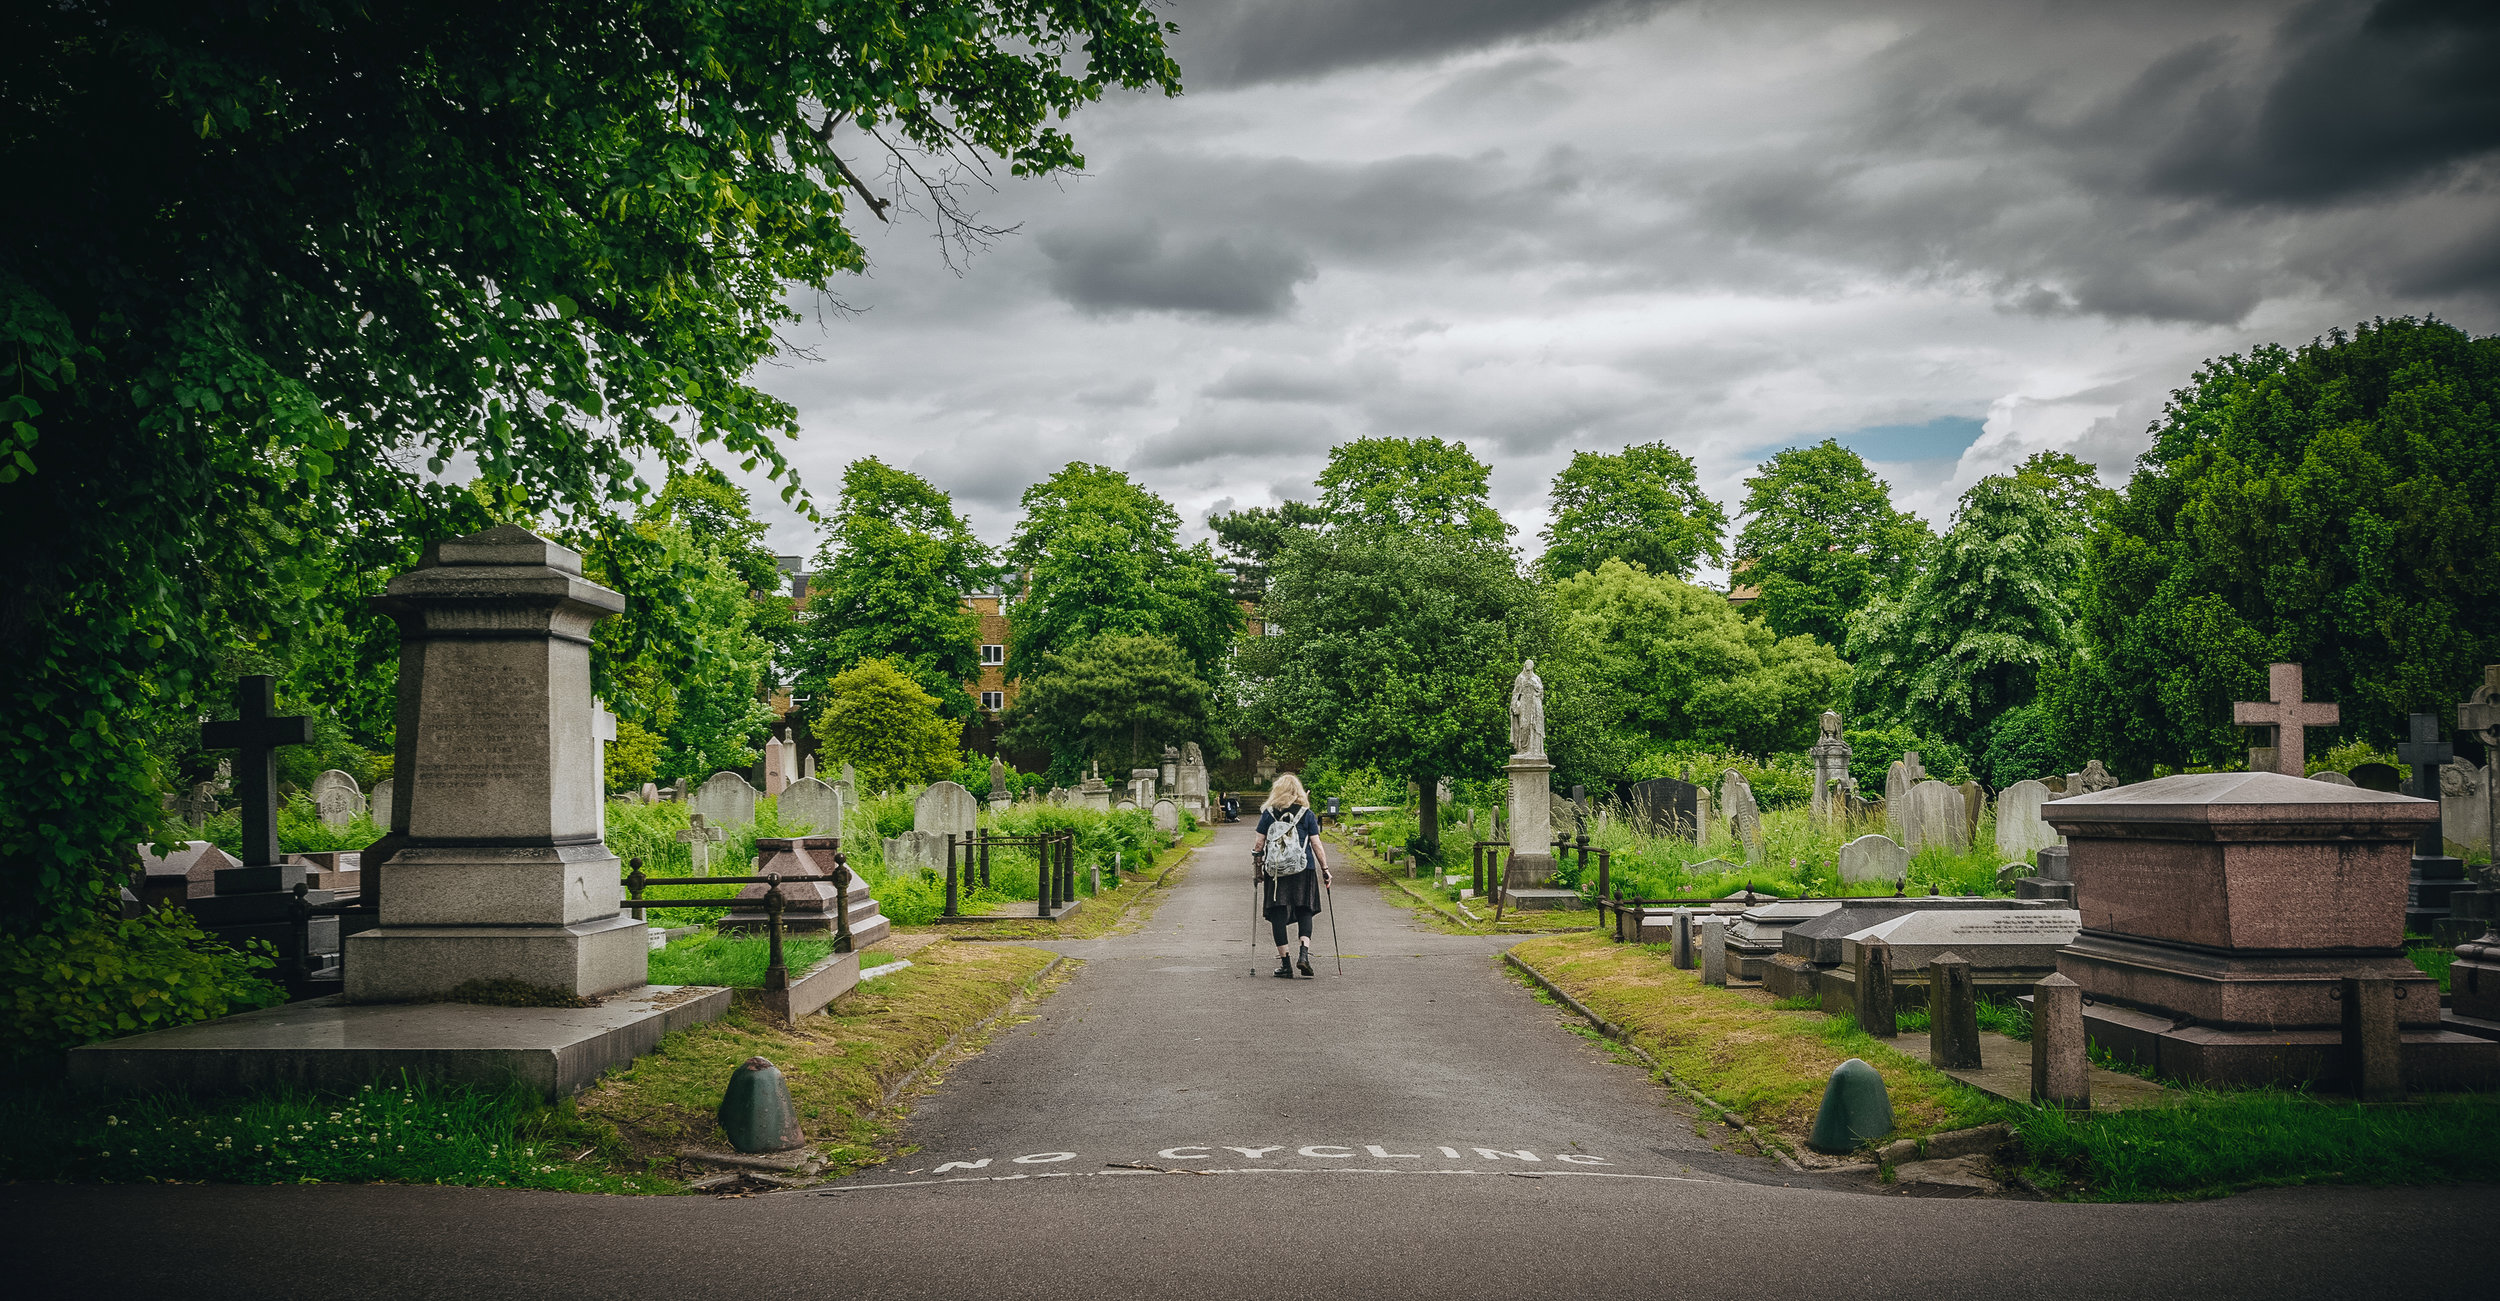 One final shot thanks to our neighbourhood cemetery!